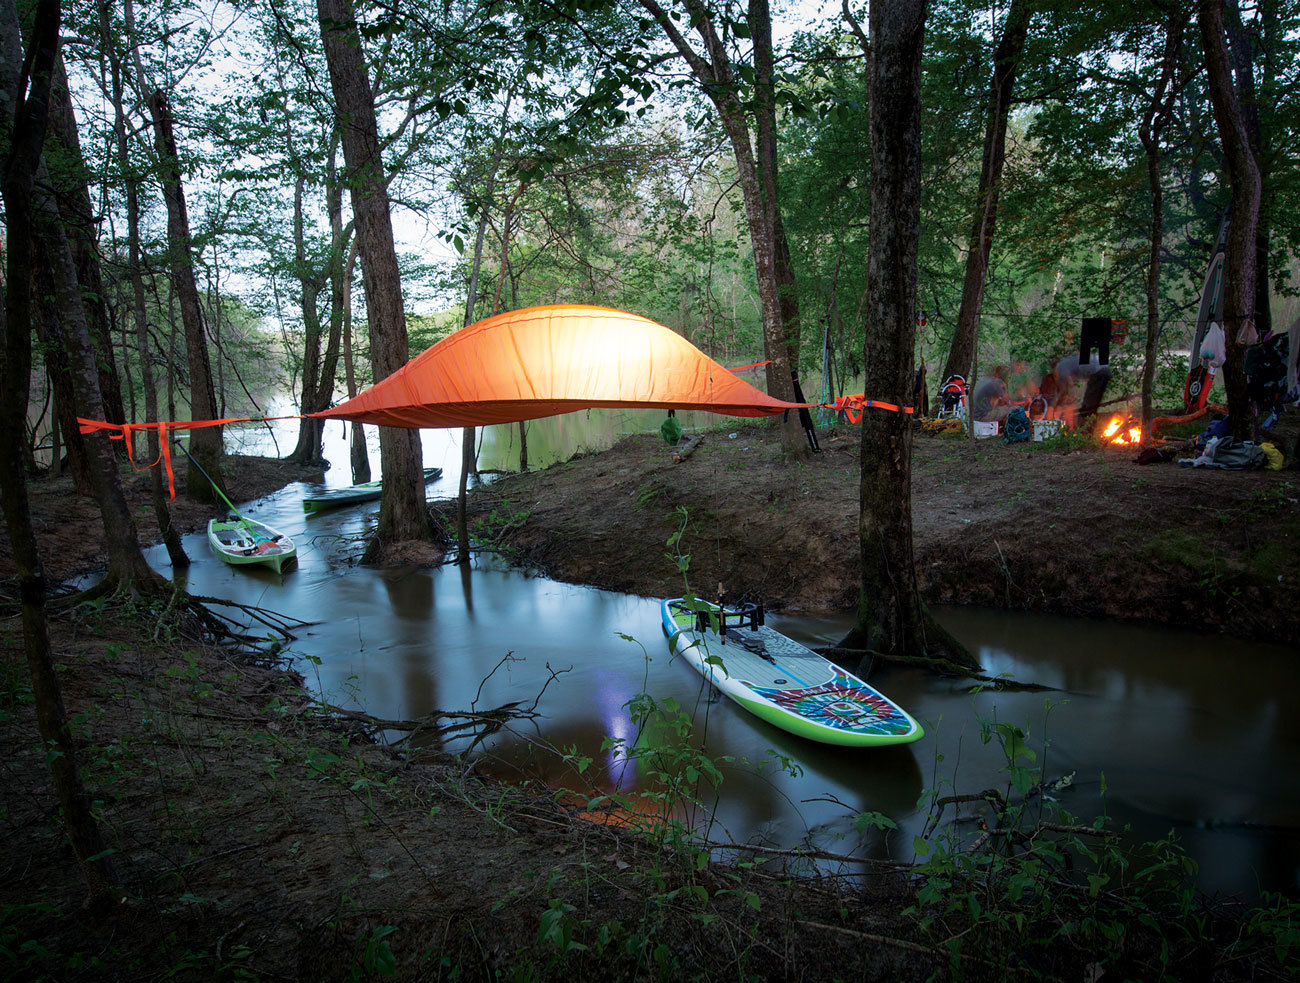 Tentsile Stingray Hammock Tree Tent - Camouflage. Show More & Tentsile Stingray Tree Tent - Camouflage